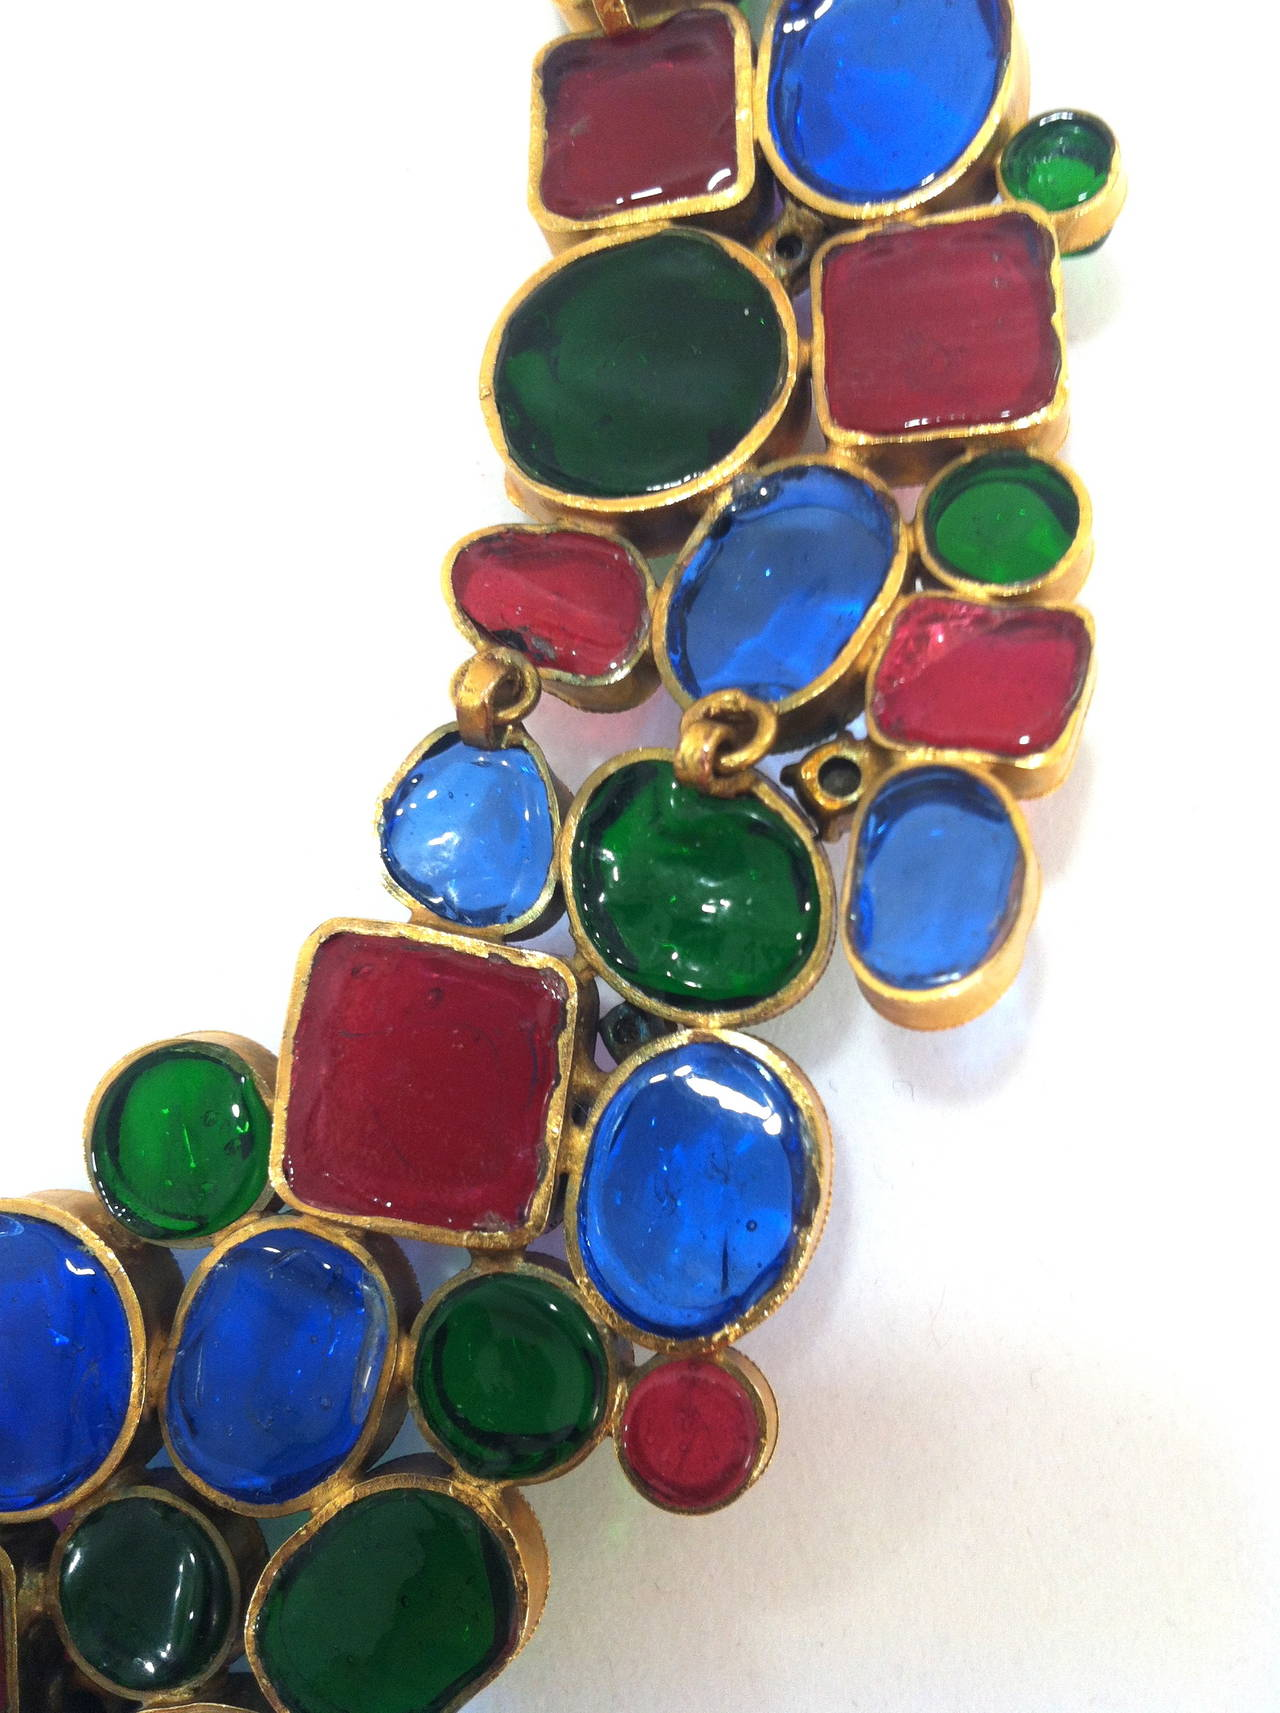 Rare 1970's Mademoiselle Chanel  Byzantine Necklace by Gripoix 3